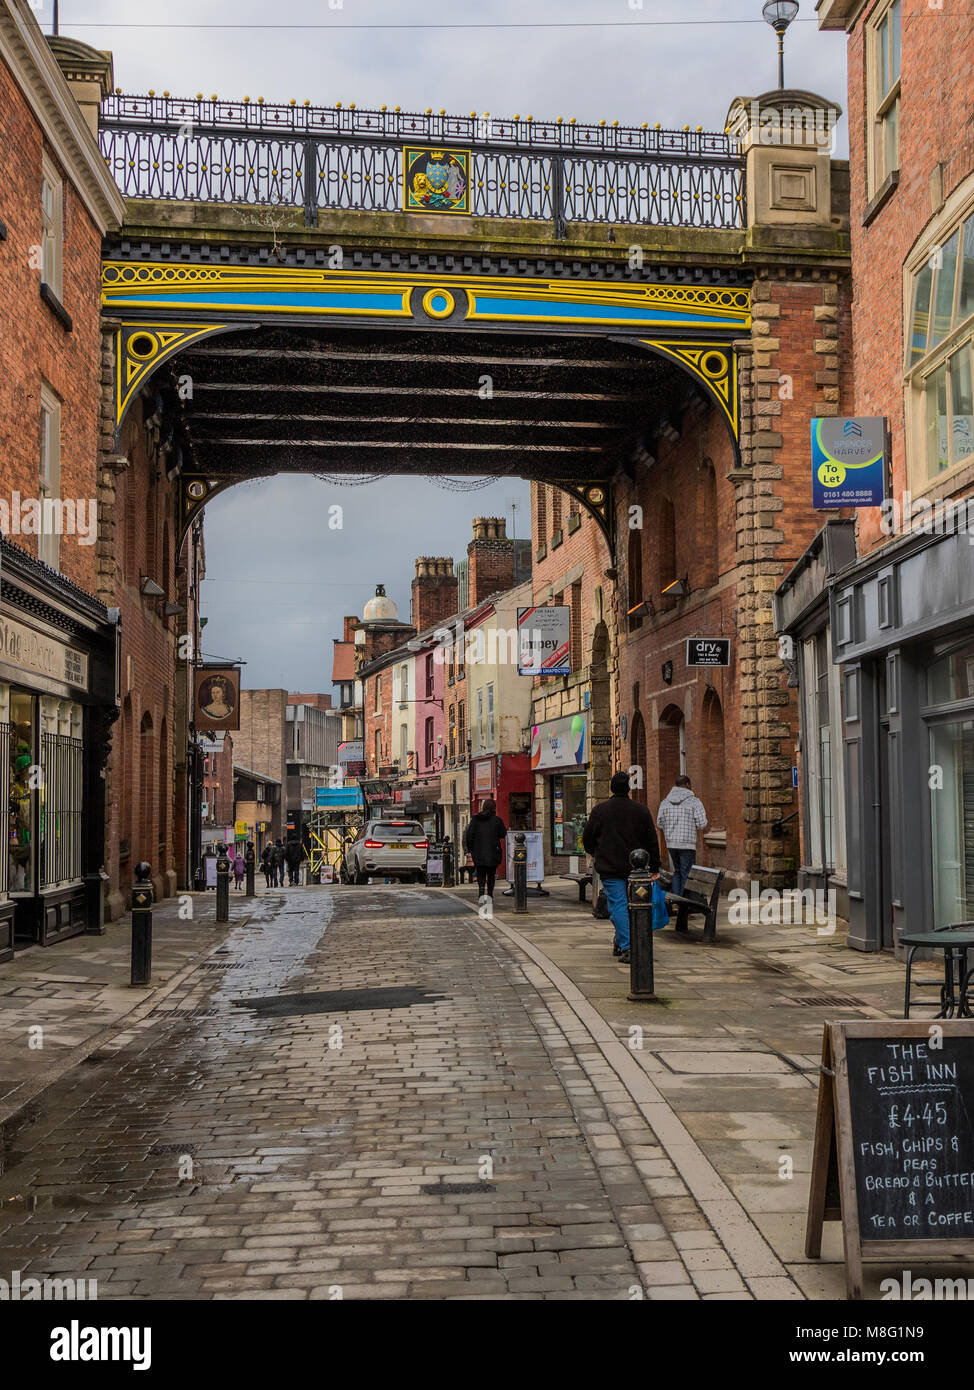 St Petersgate Bridge, Stockport Town Centre, Greater Manchester, UK - Stock Image